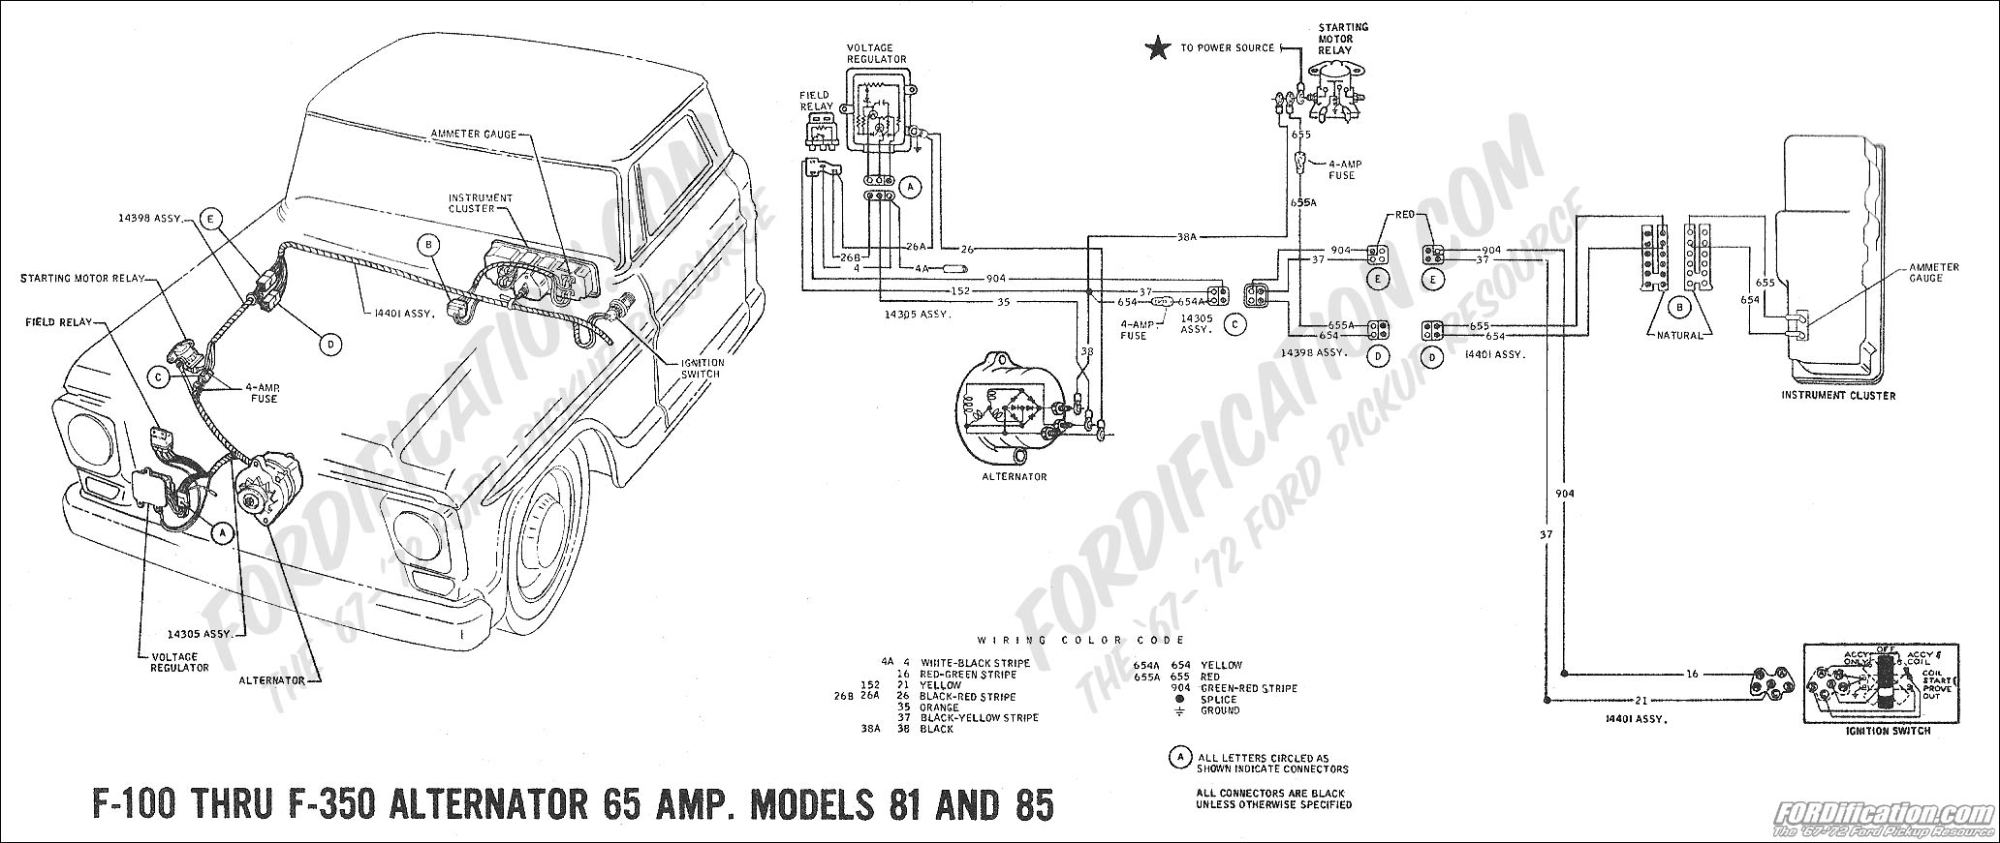 hight resolution of 1981 ford alt wiring wiring diagram detailed 1988 ford alternator wiring diagram 1981 ford charging system wiring diagram